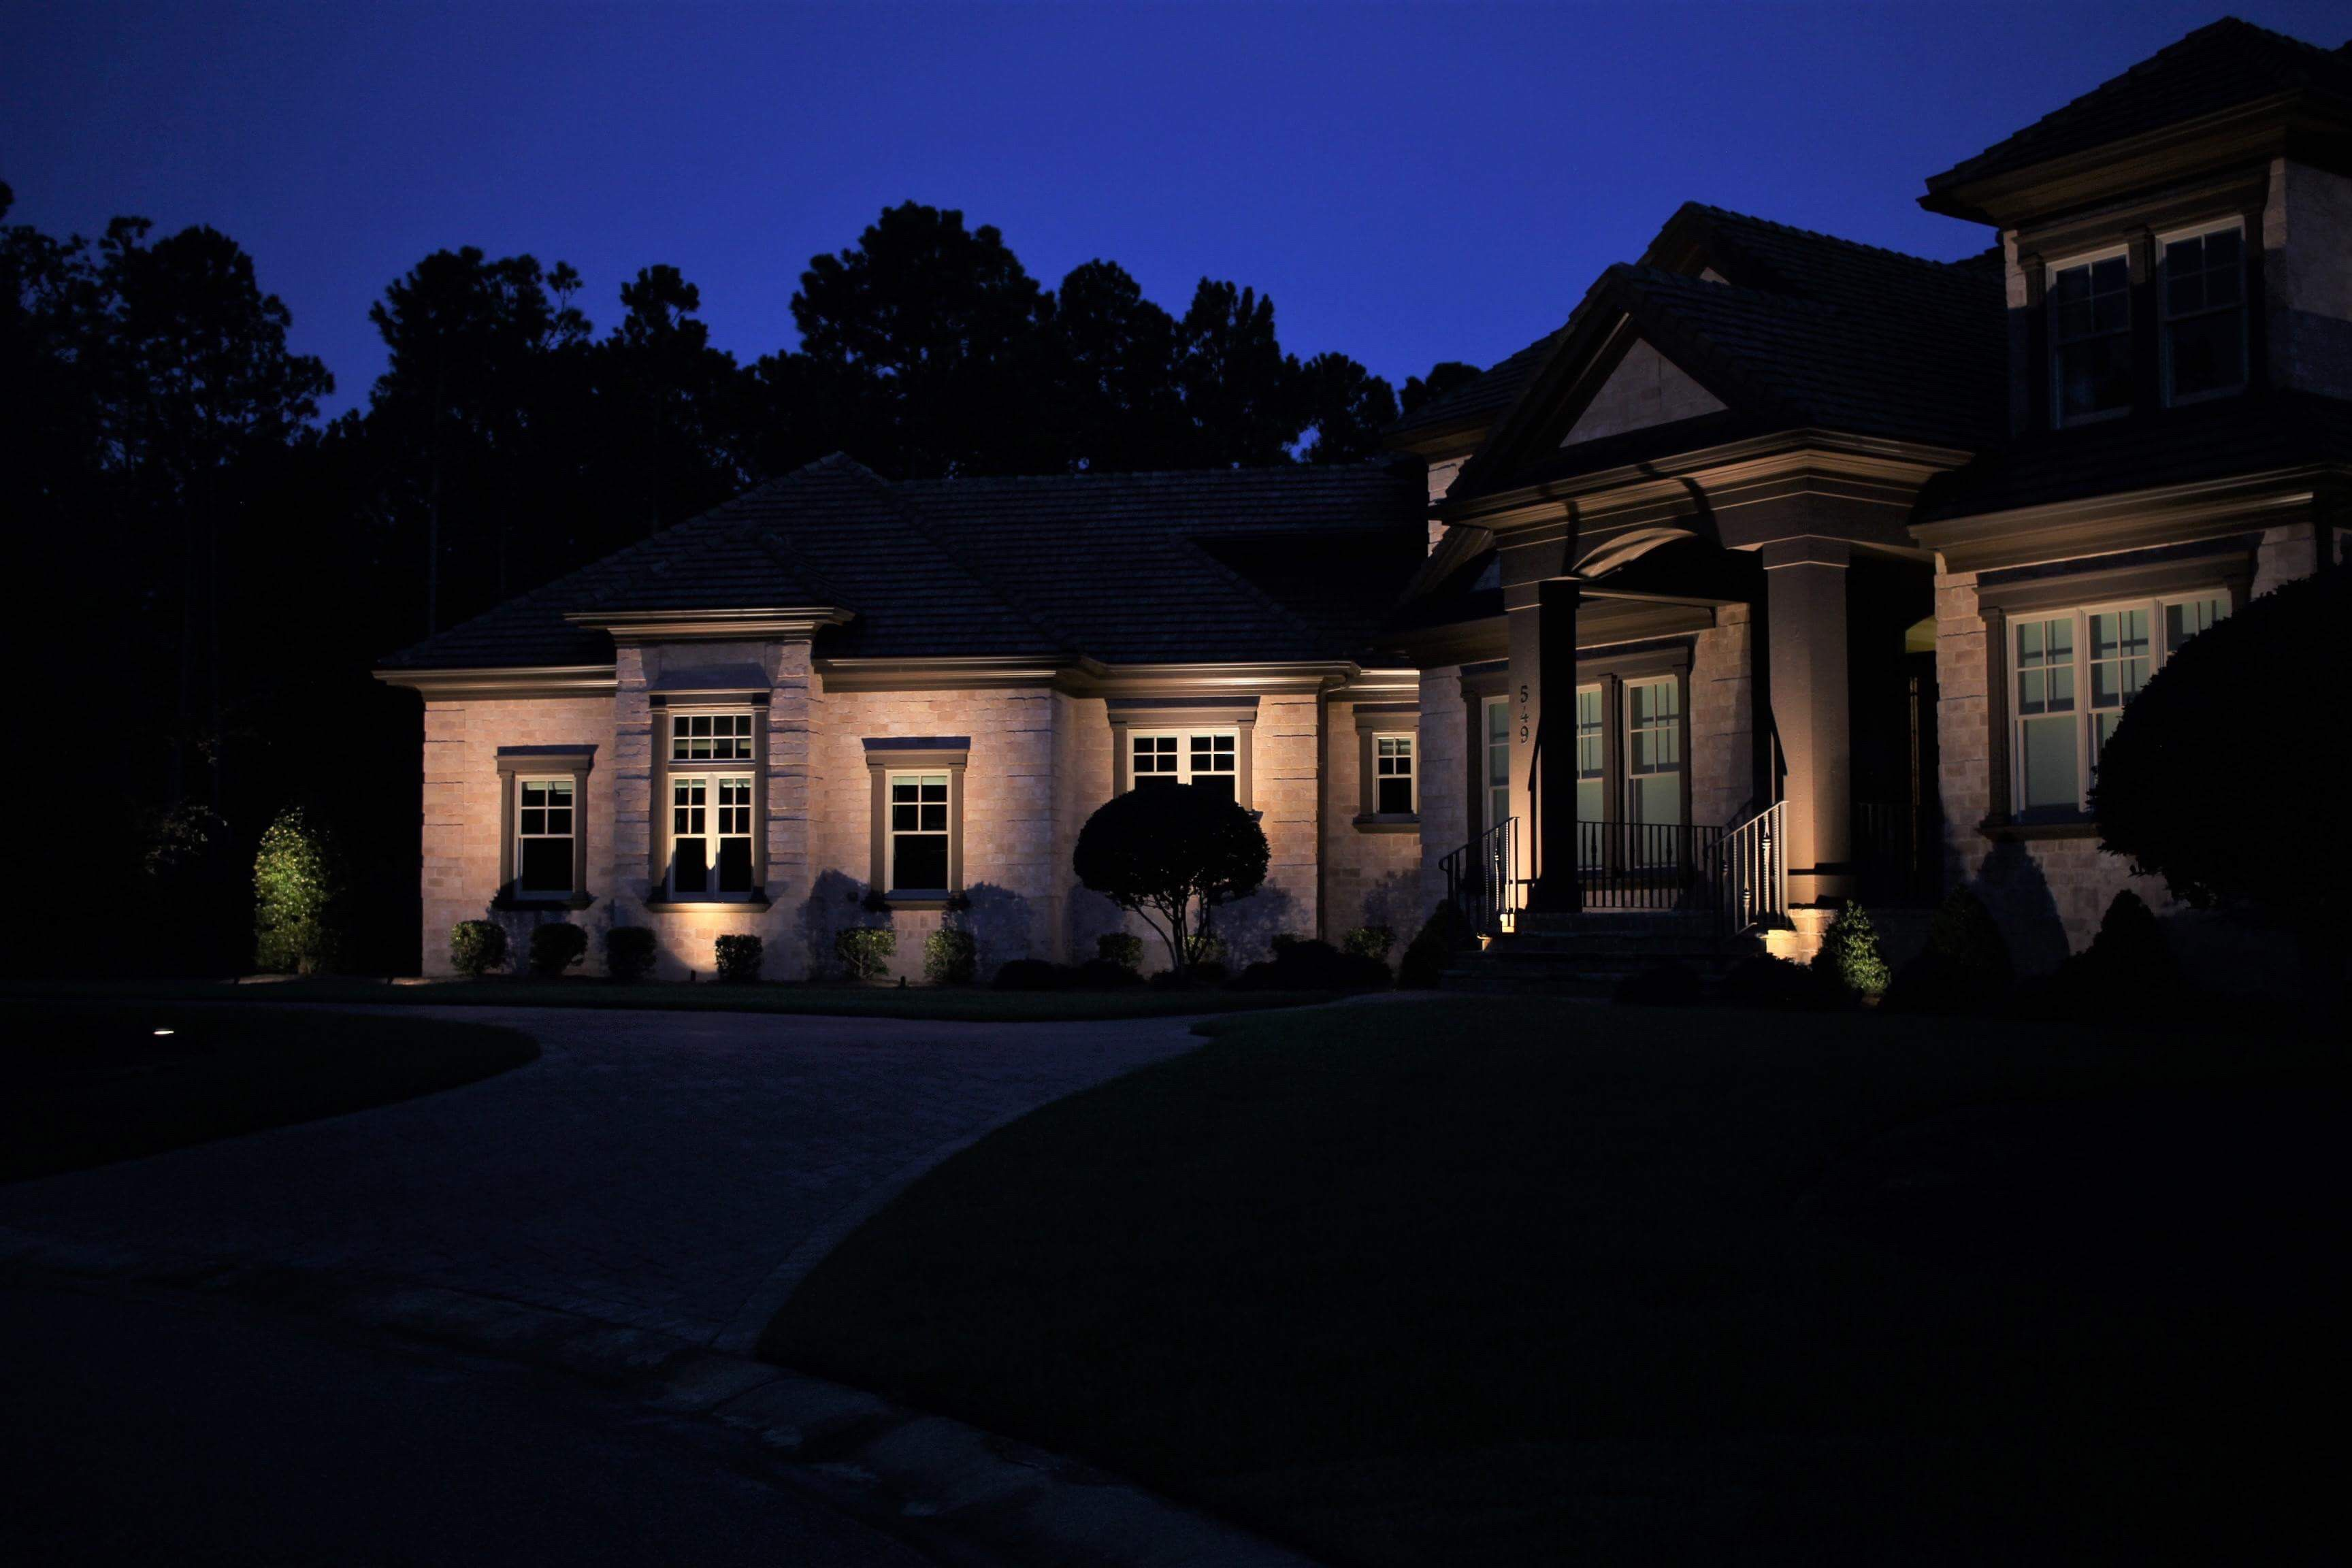 Set The Mood Of Your Home In The Evening With Images Holiday Lights Outdoor Landscape Lighting Home Lighting